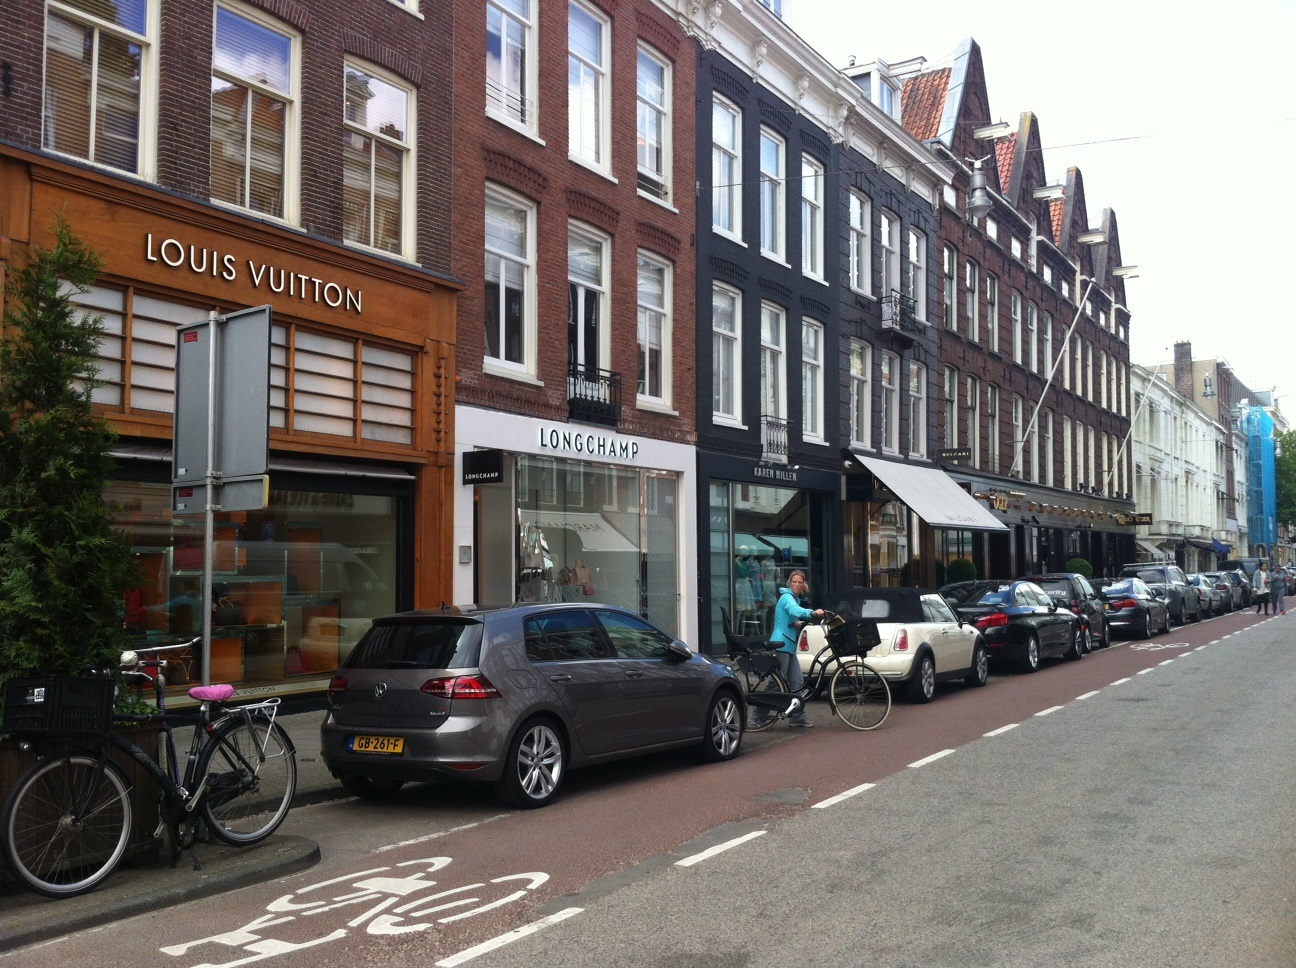 Shopping Areas Amsterdam: PC Hoofstraat, Louis Vuitton, Chanel, Gucci, Hermes, Cartier